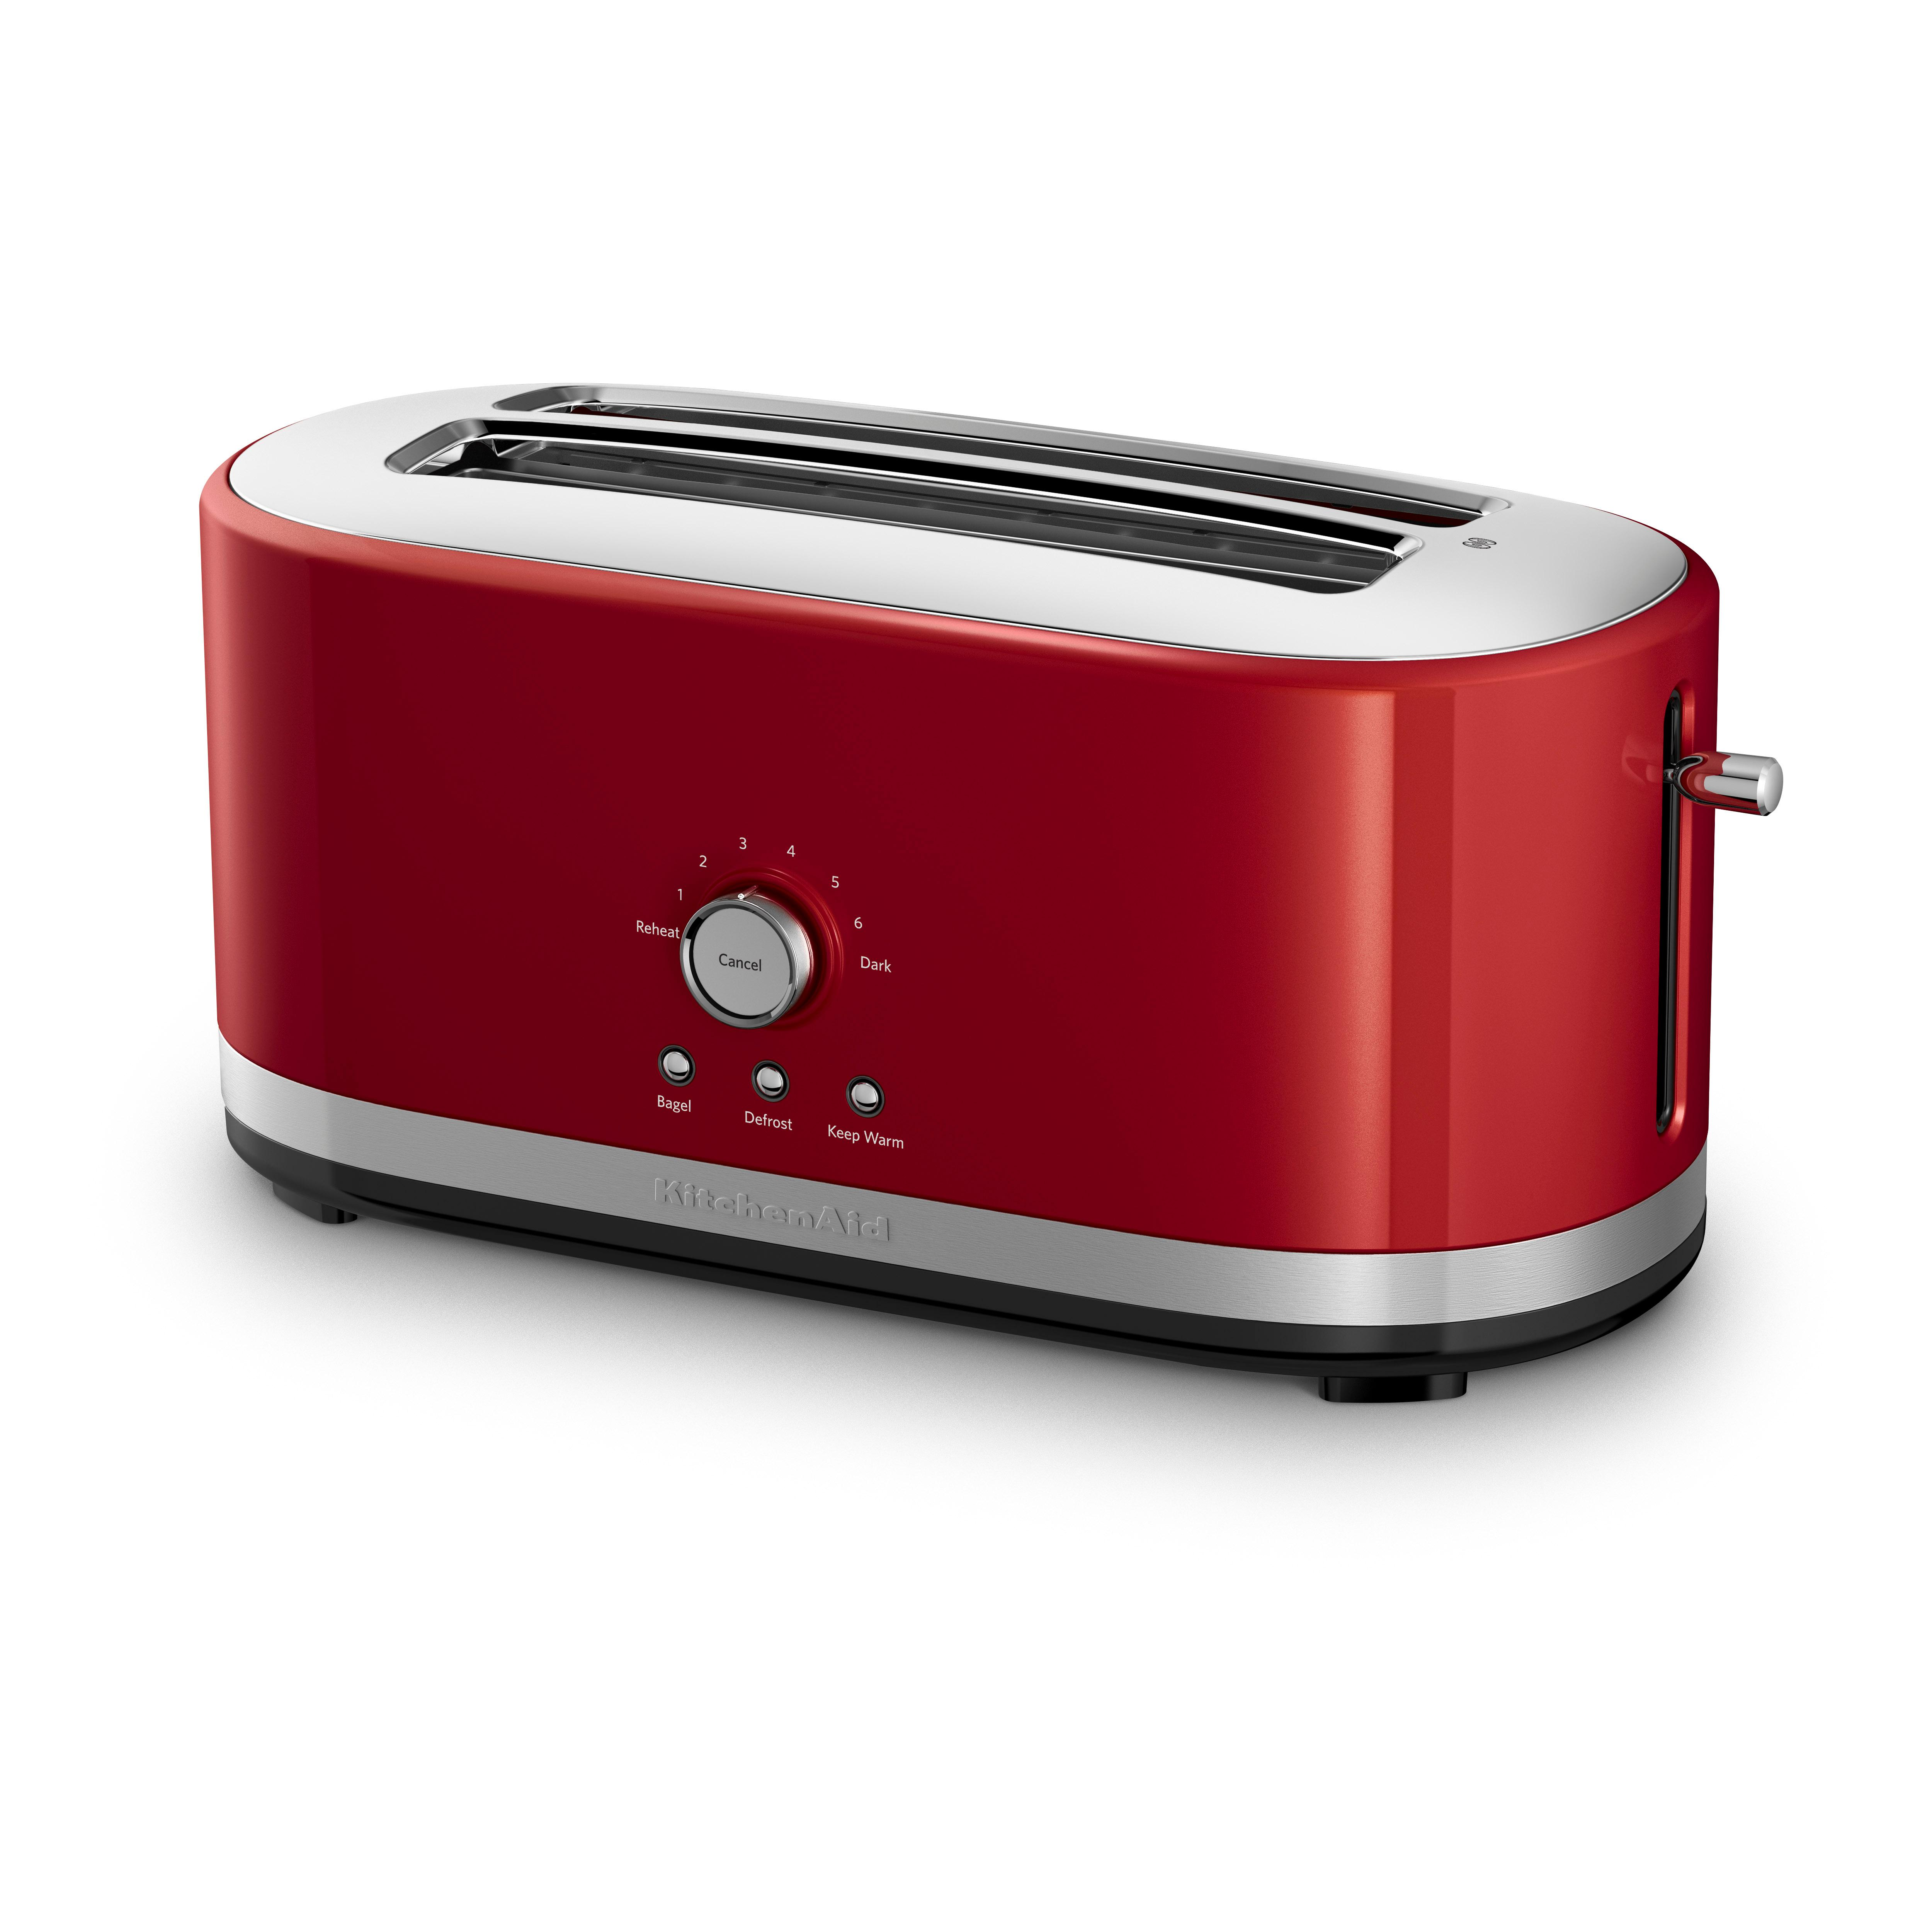 Kitchenaid Kmt4116cu 4 Slice Long Slot Toaster With High